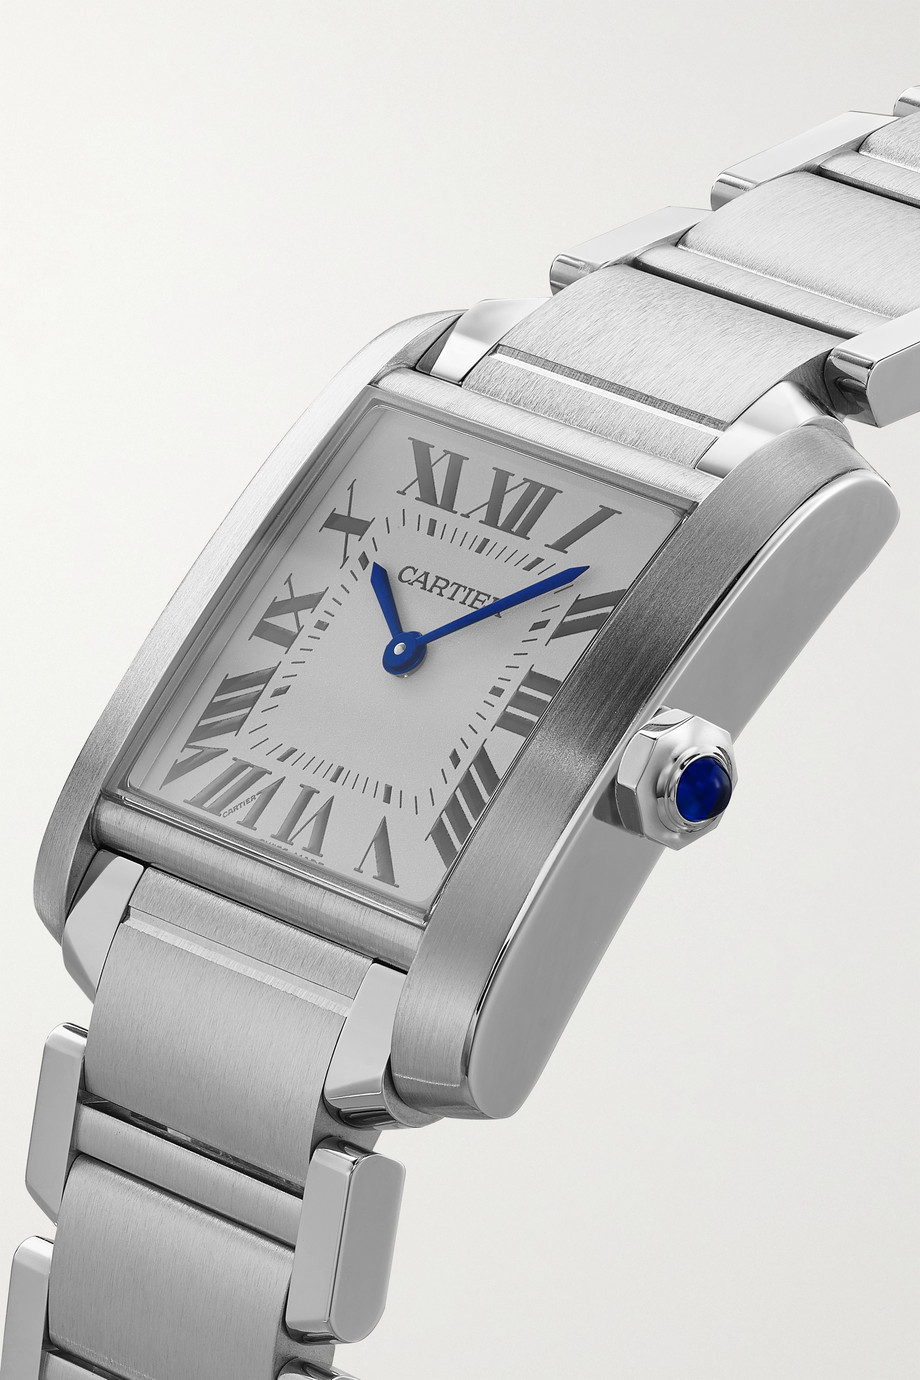 Cartier Tank Française 25mm medium stainless steel watch